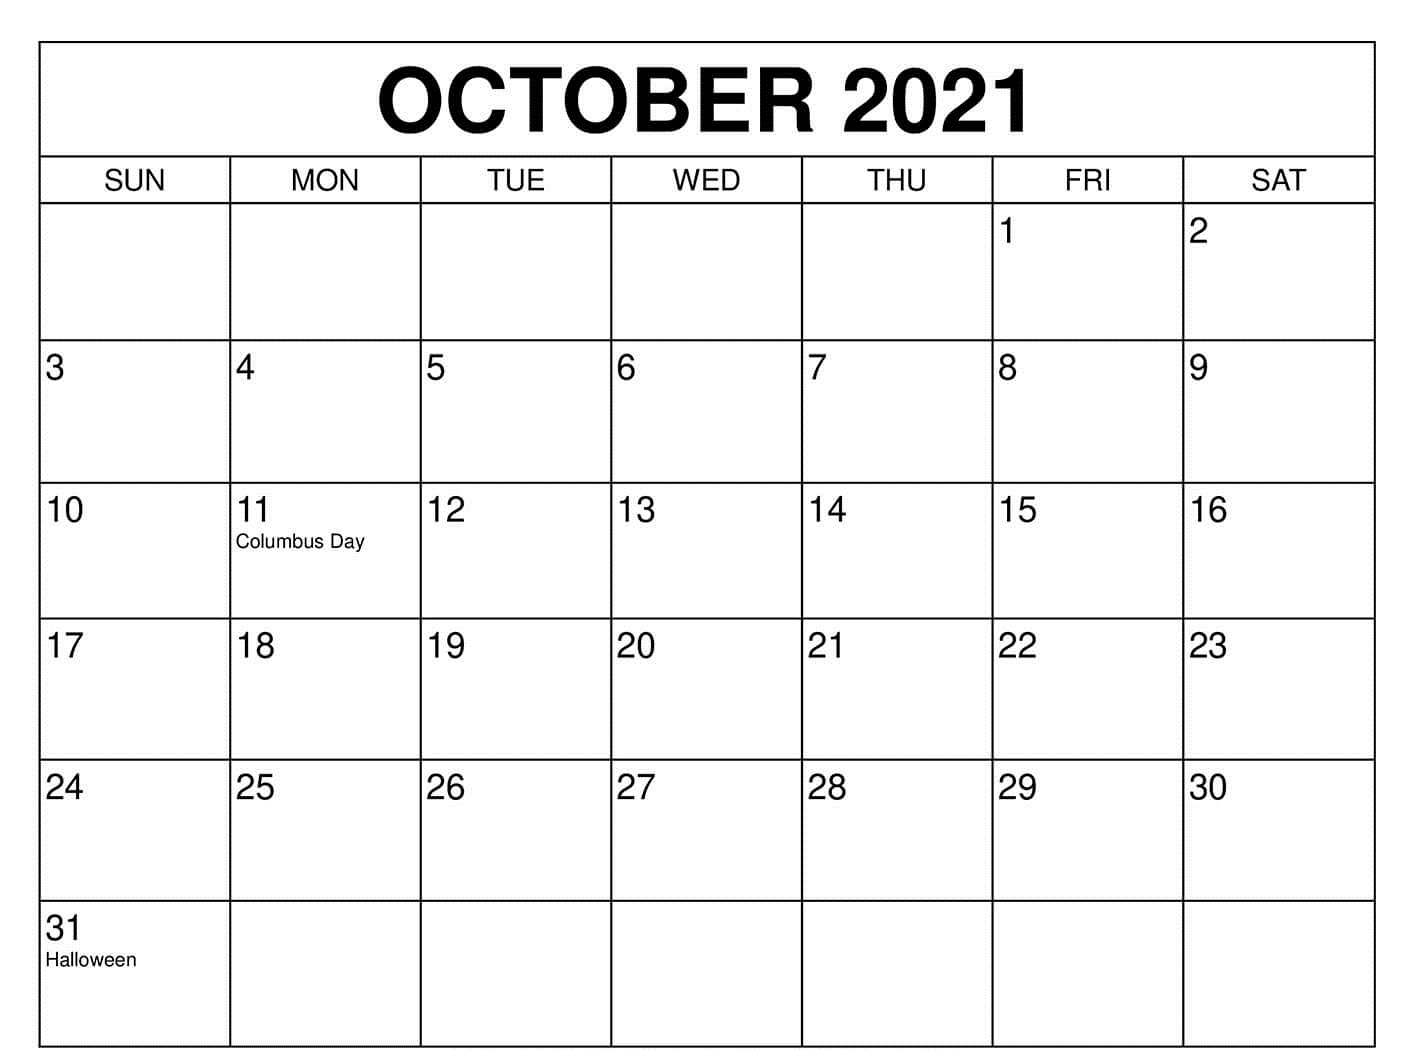 October 2021 Calendar with Holidays